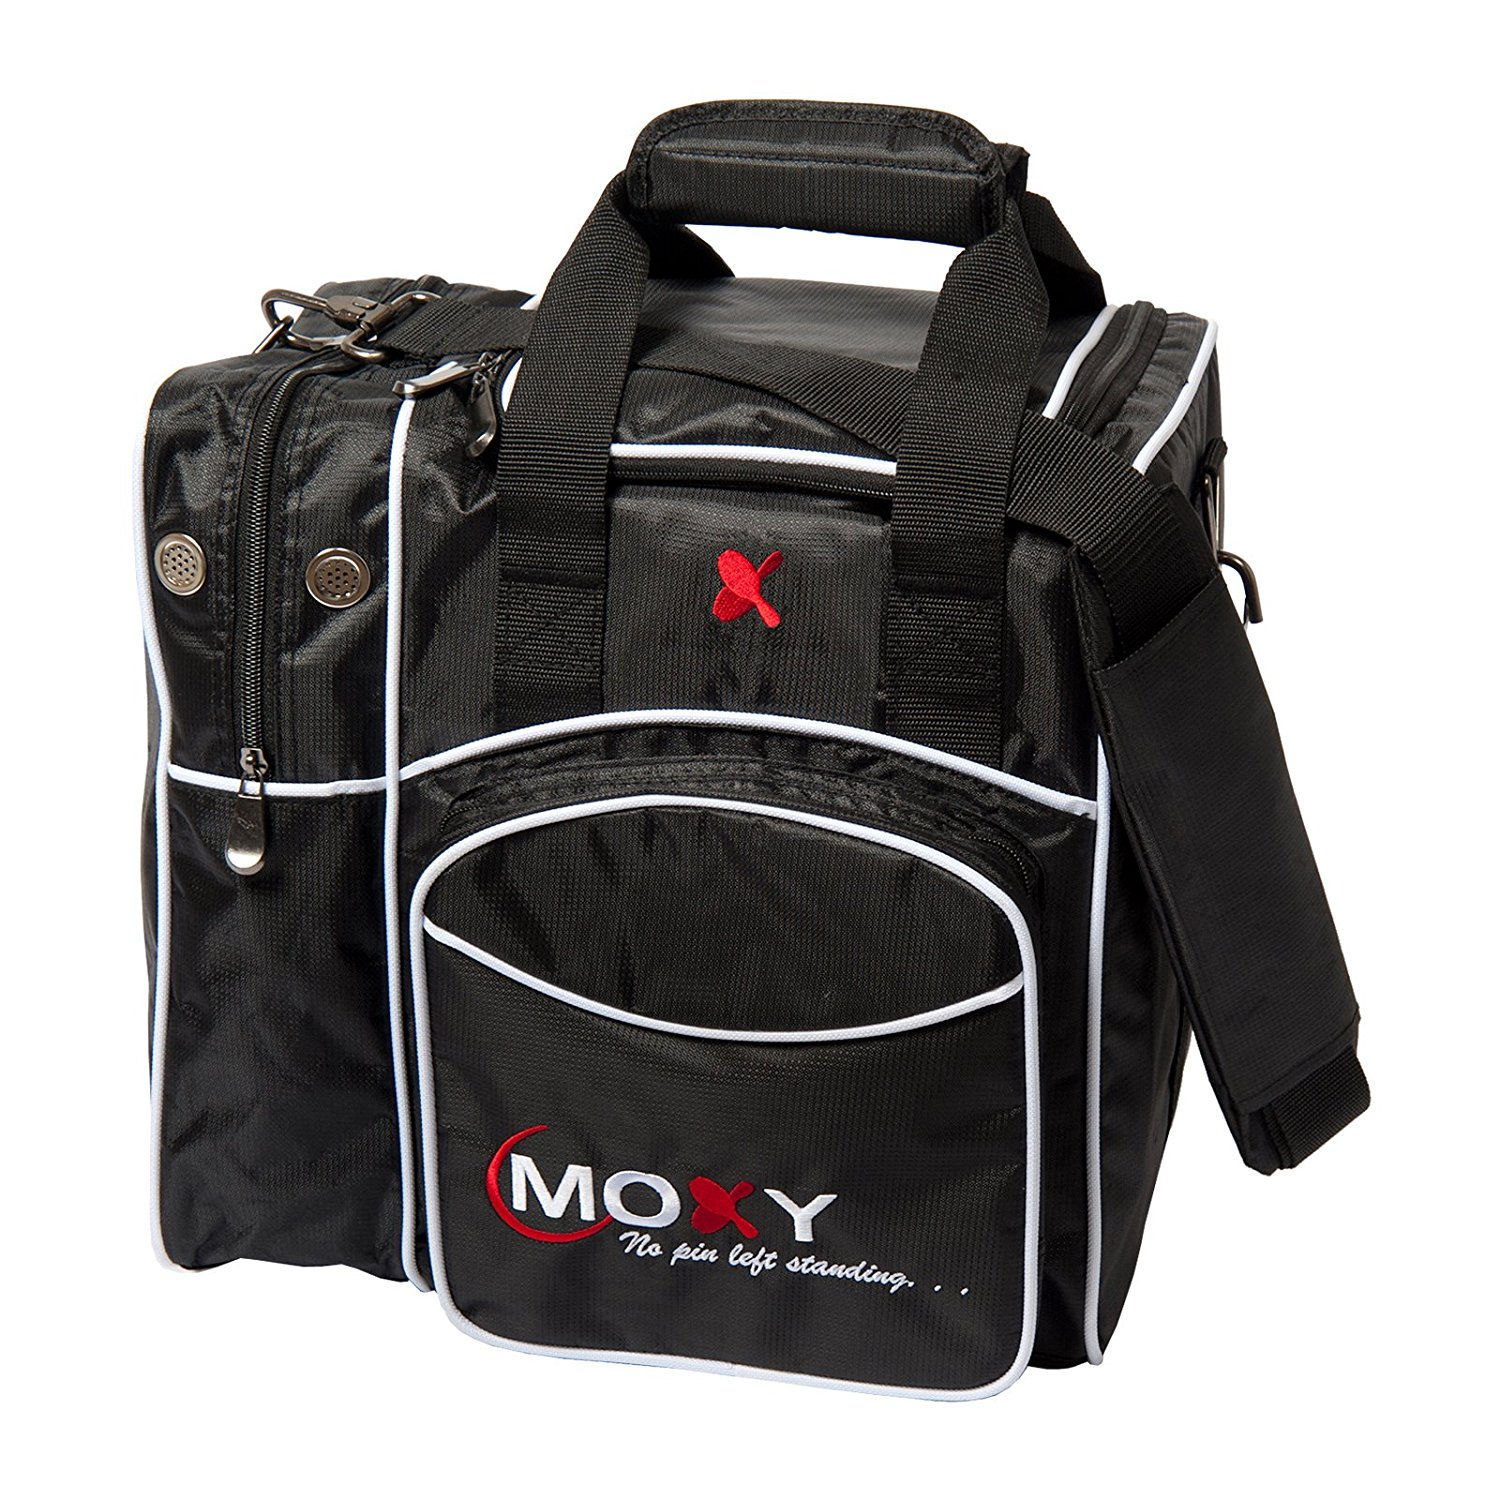 Moxy Deluxe Single Tote Bowling Bag (Black)